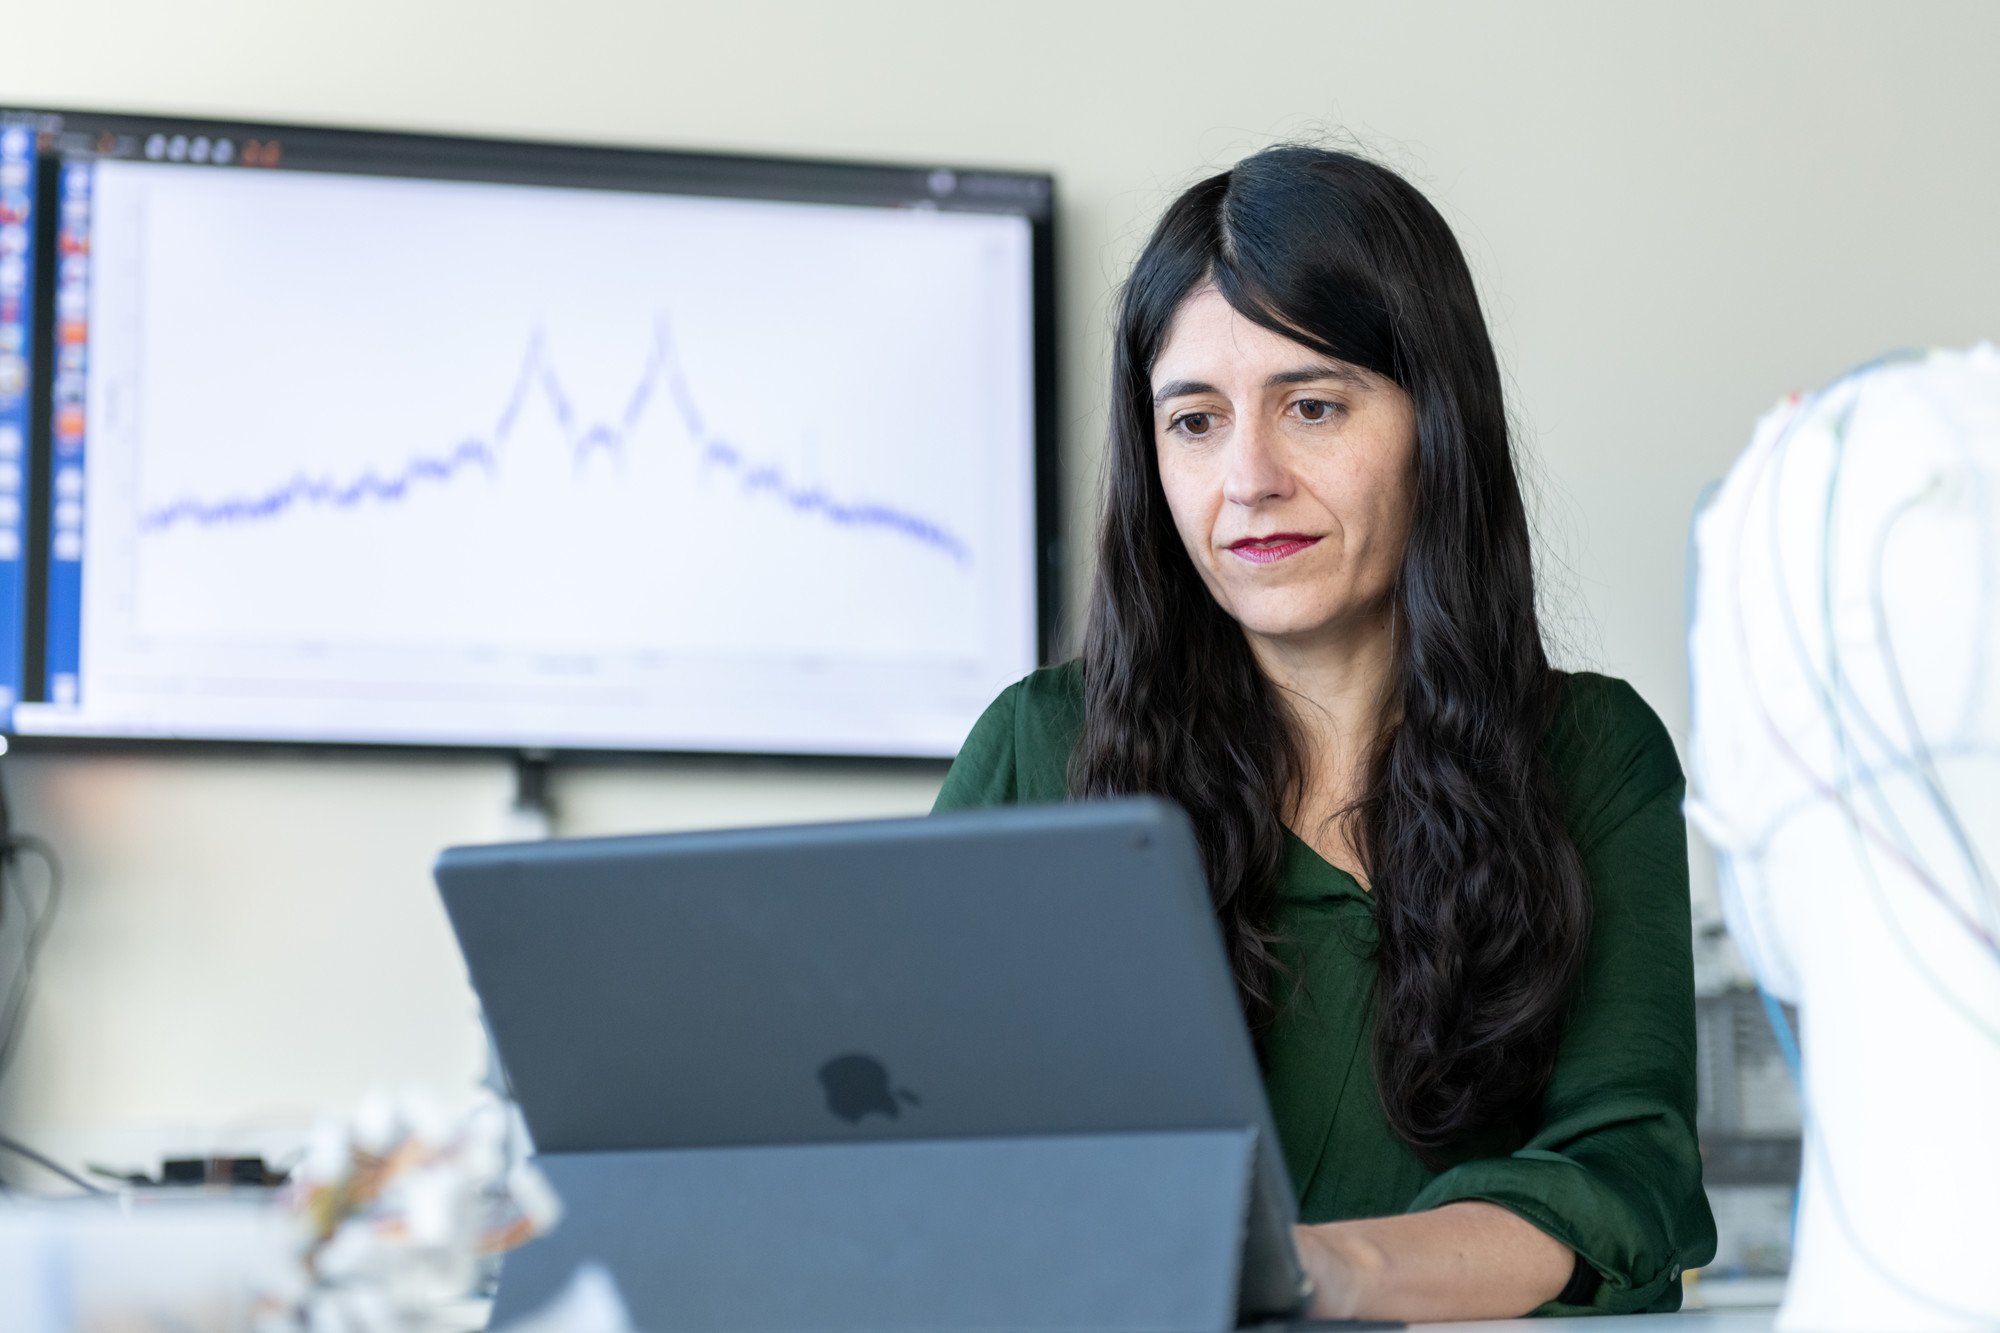 Researcher using laptop